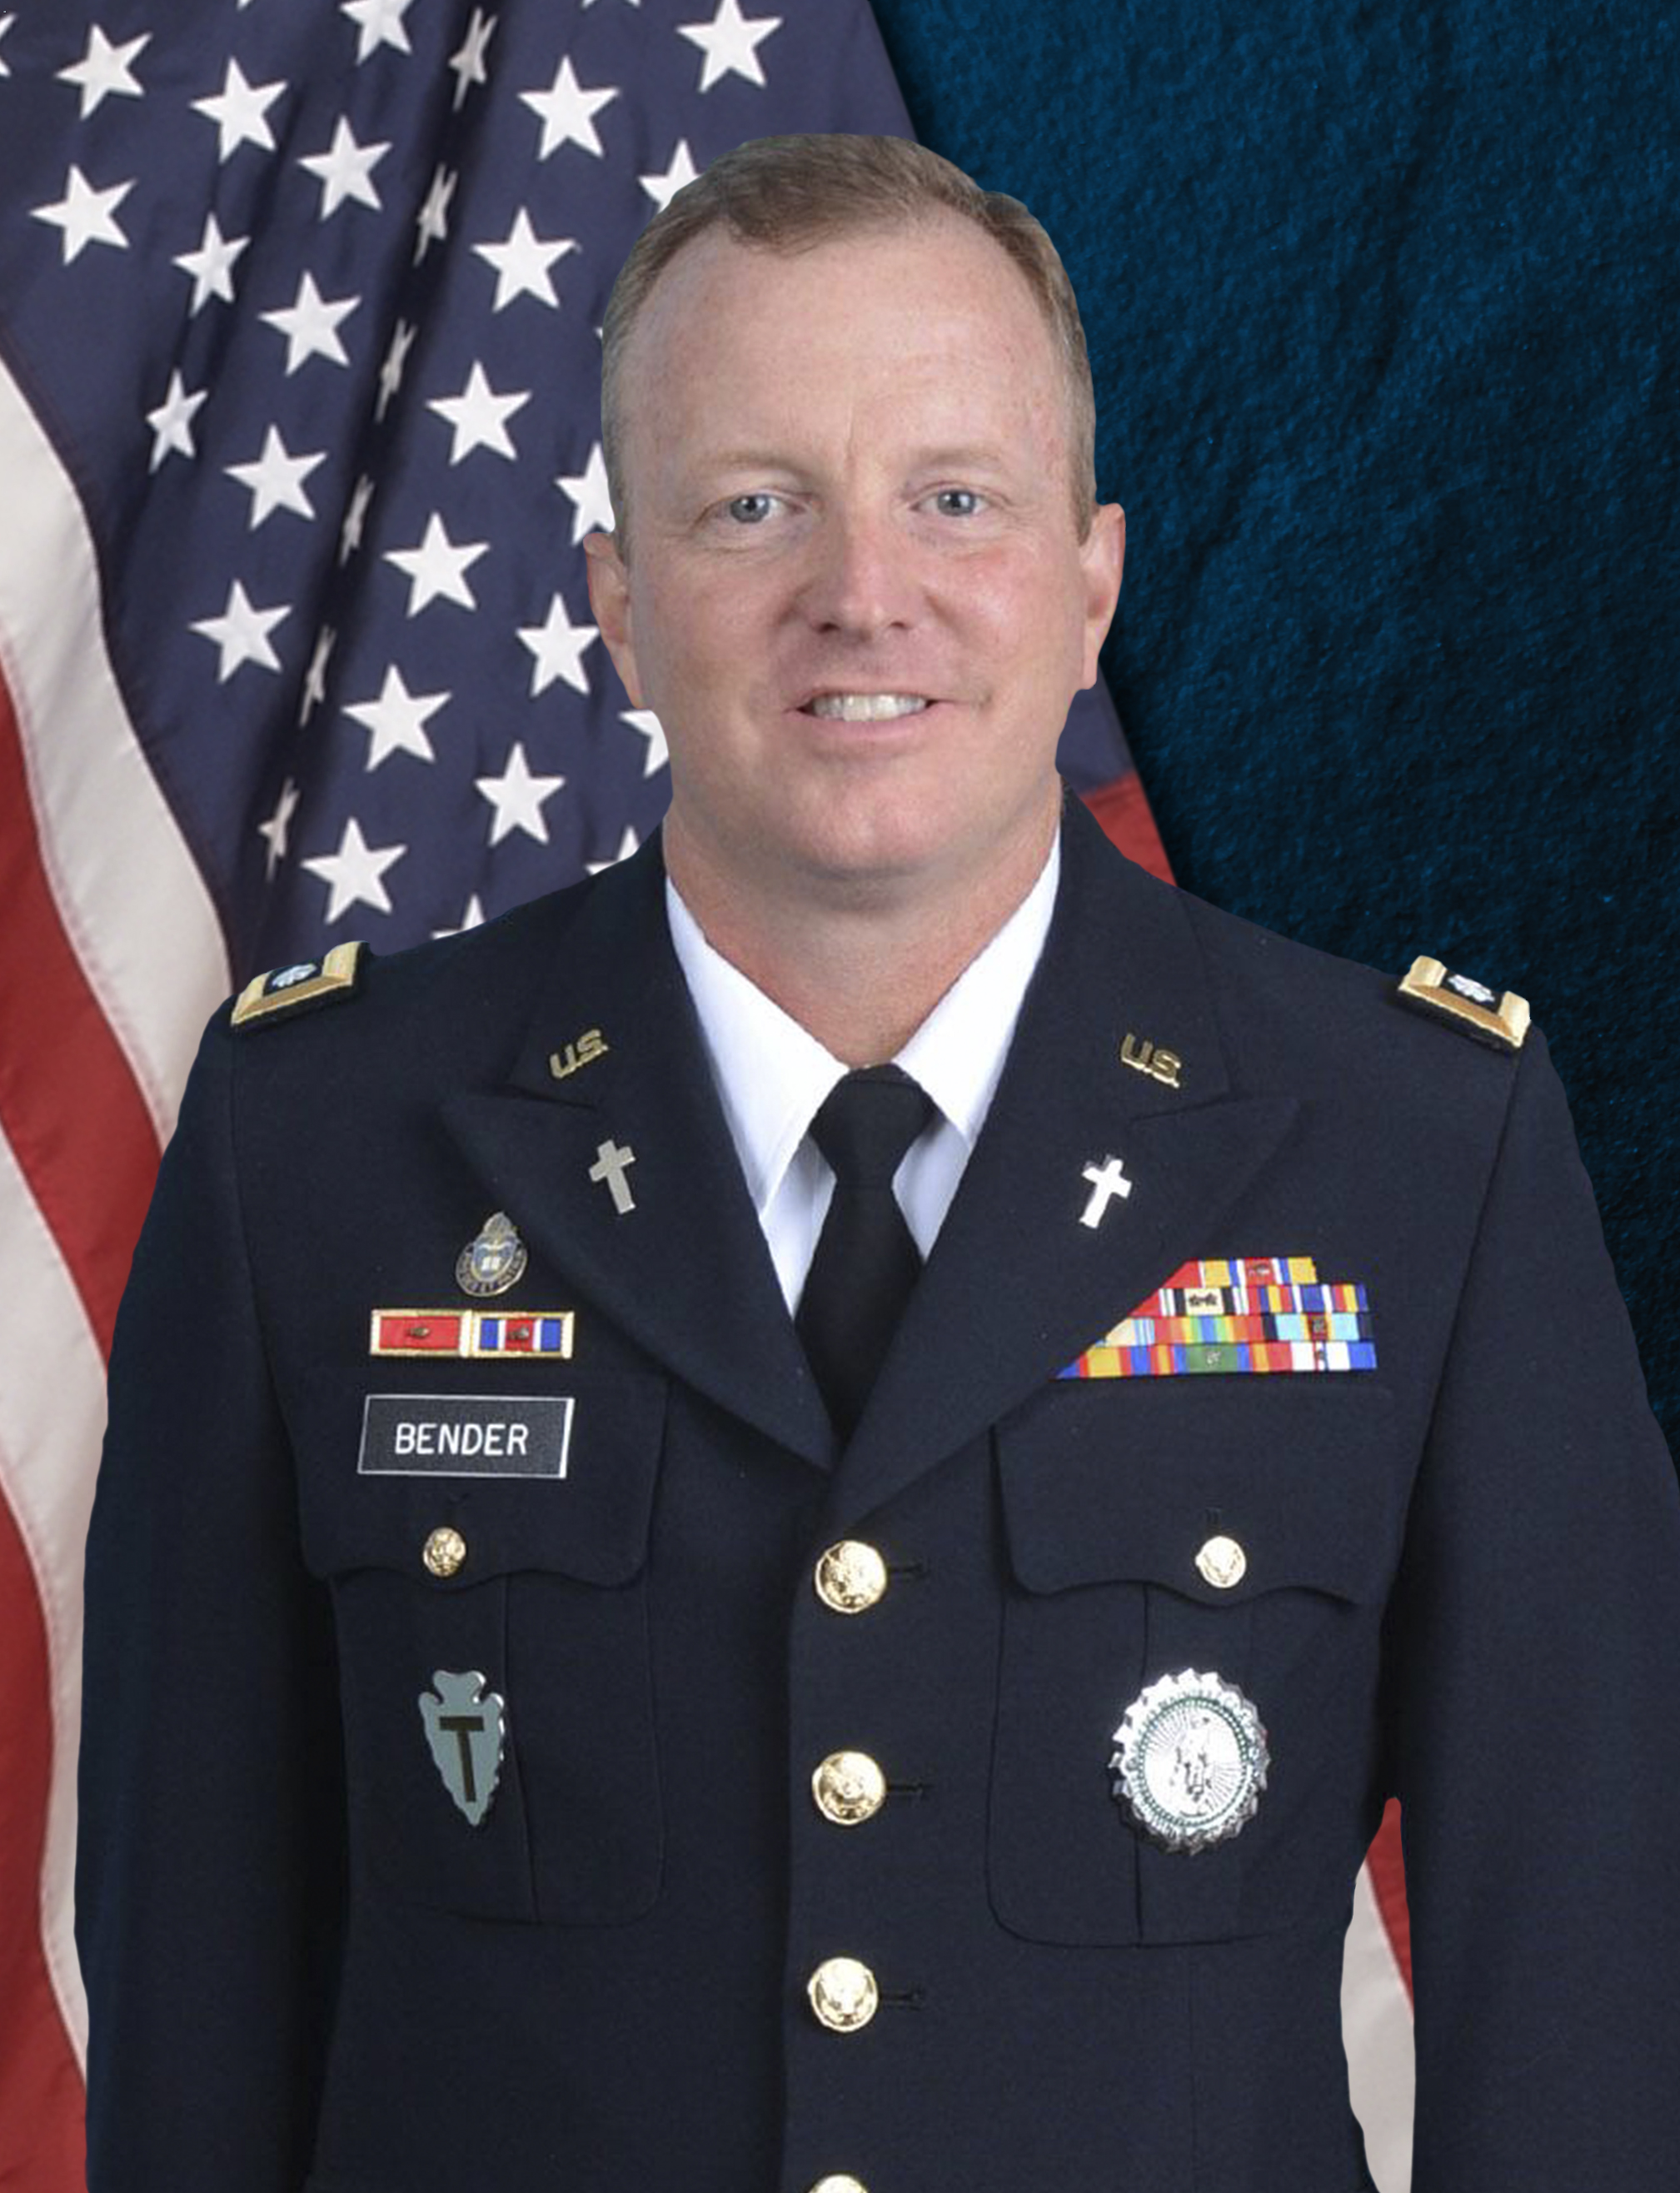 LTC Benjie Bender serves as the Chaplain for the Texas Military Department